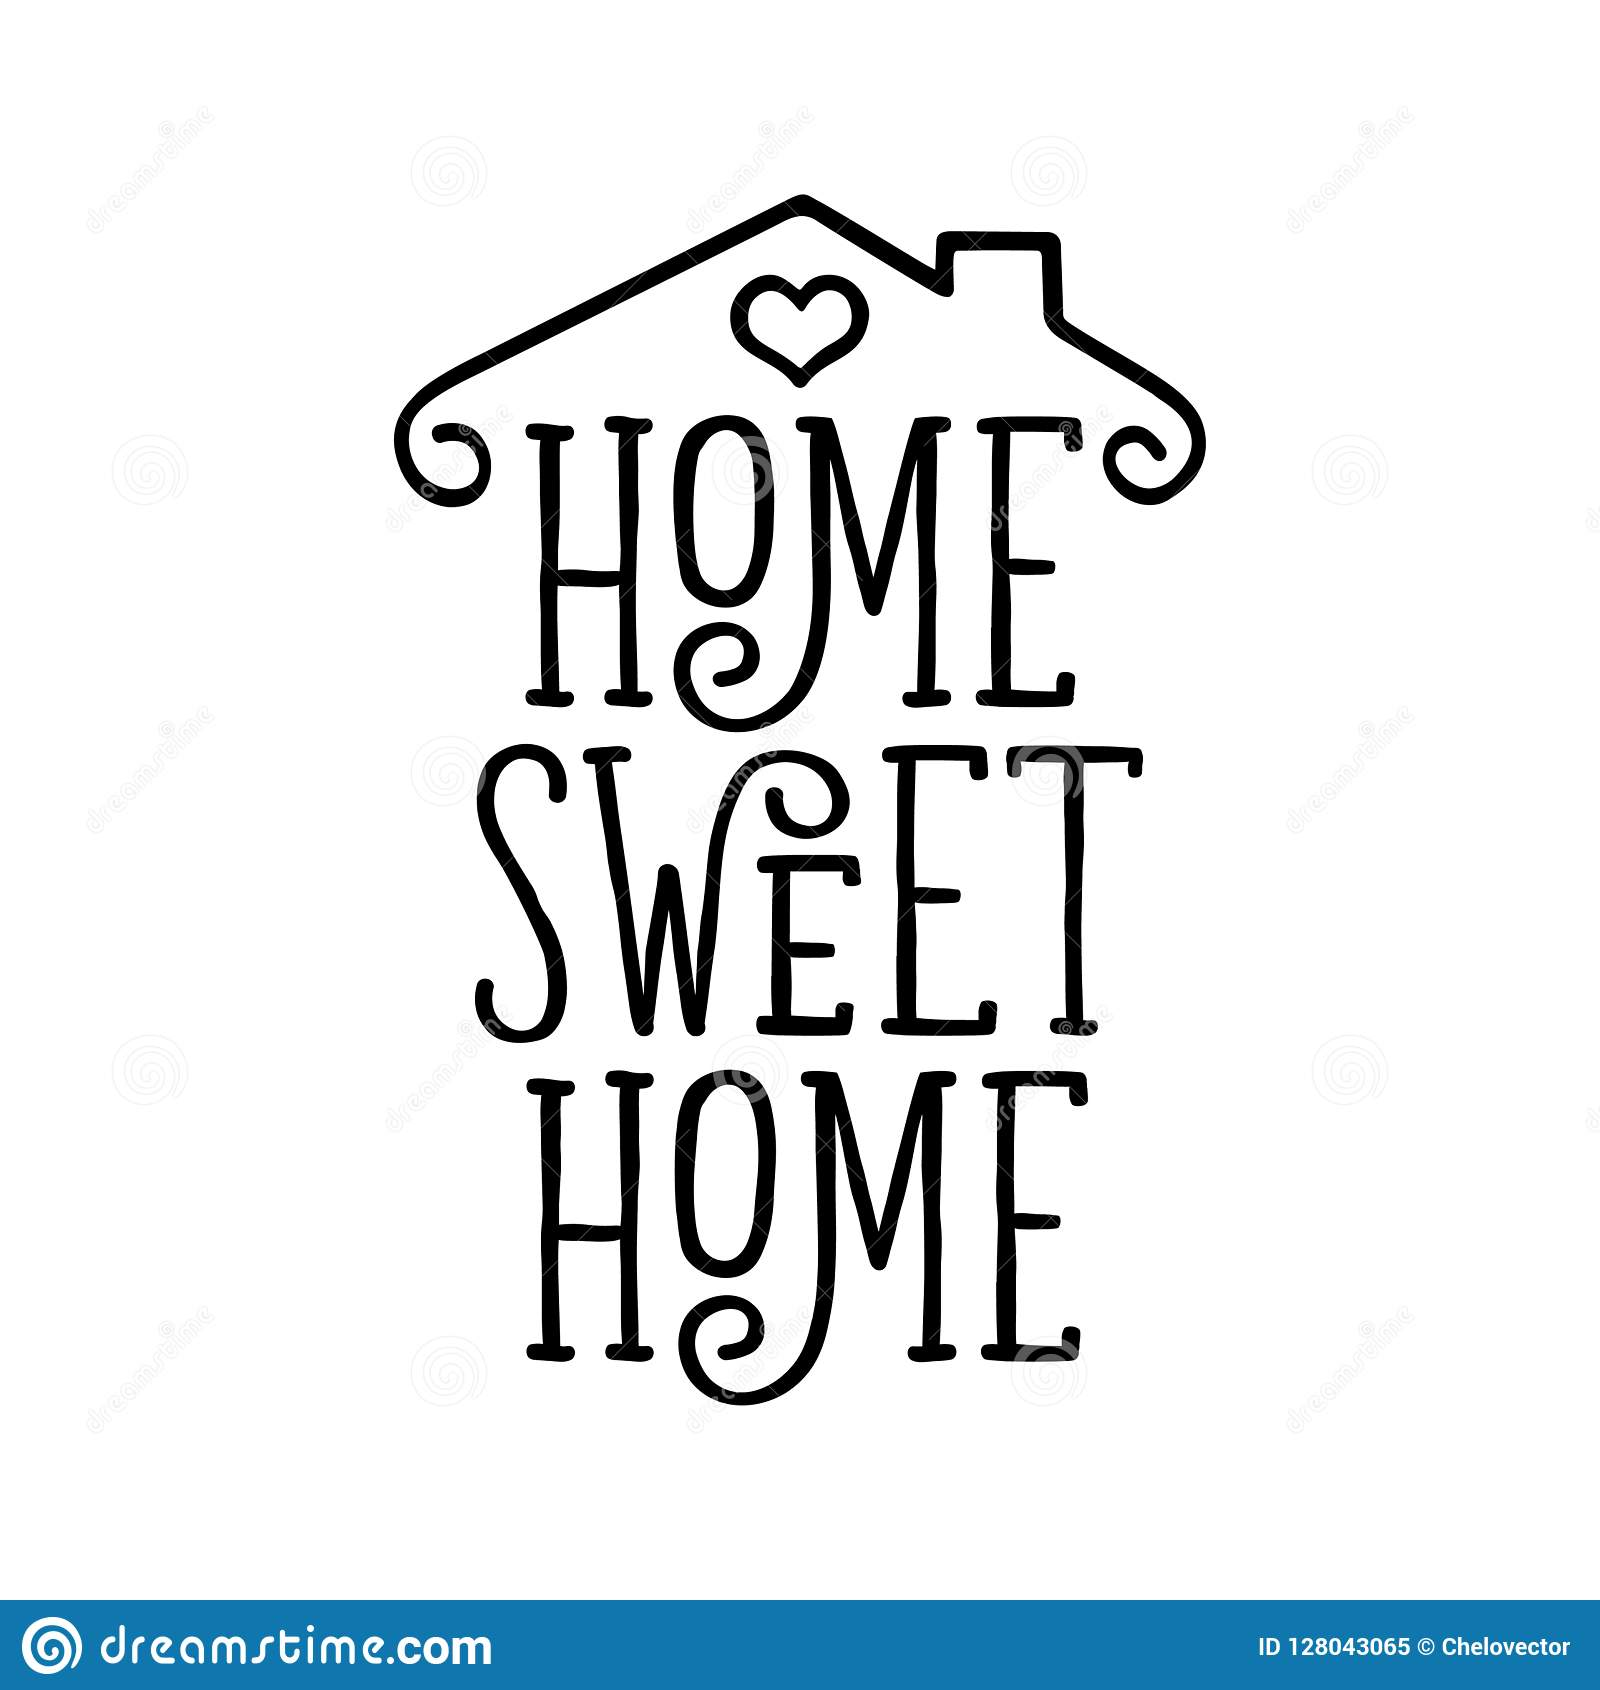 Home Sweet Home Typography Poster Vector Vintage Illustration Stock Vector Illustration Of Positive Inspiration 128043065